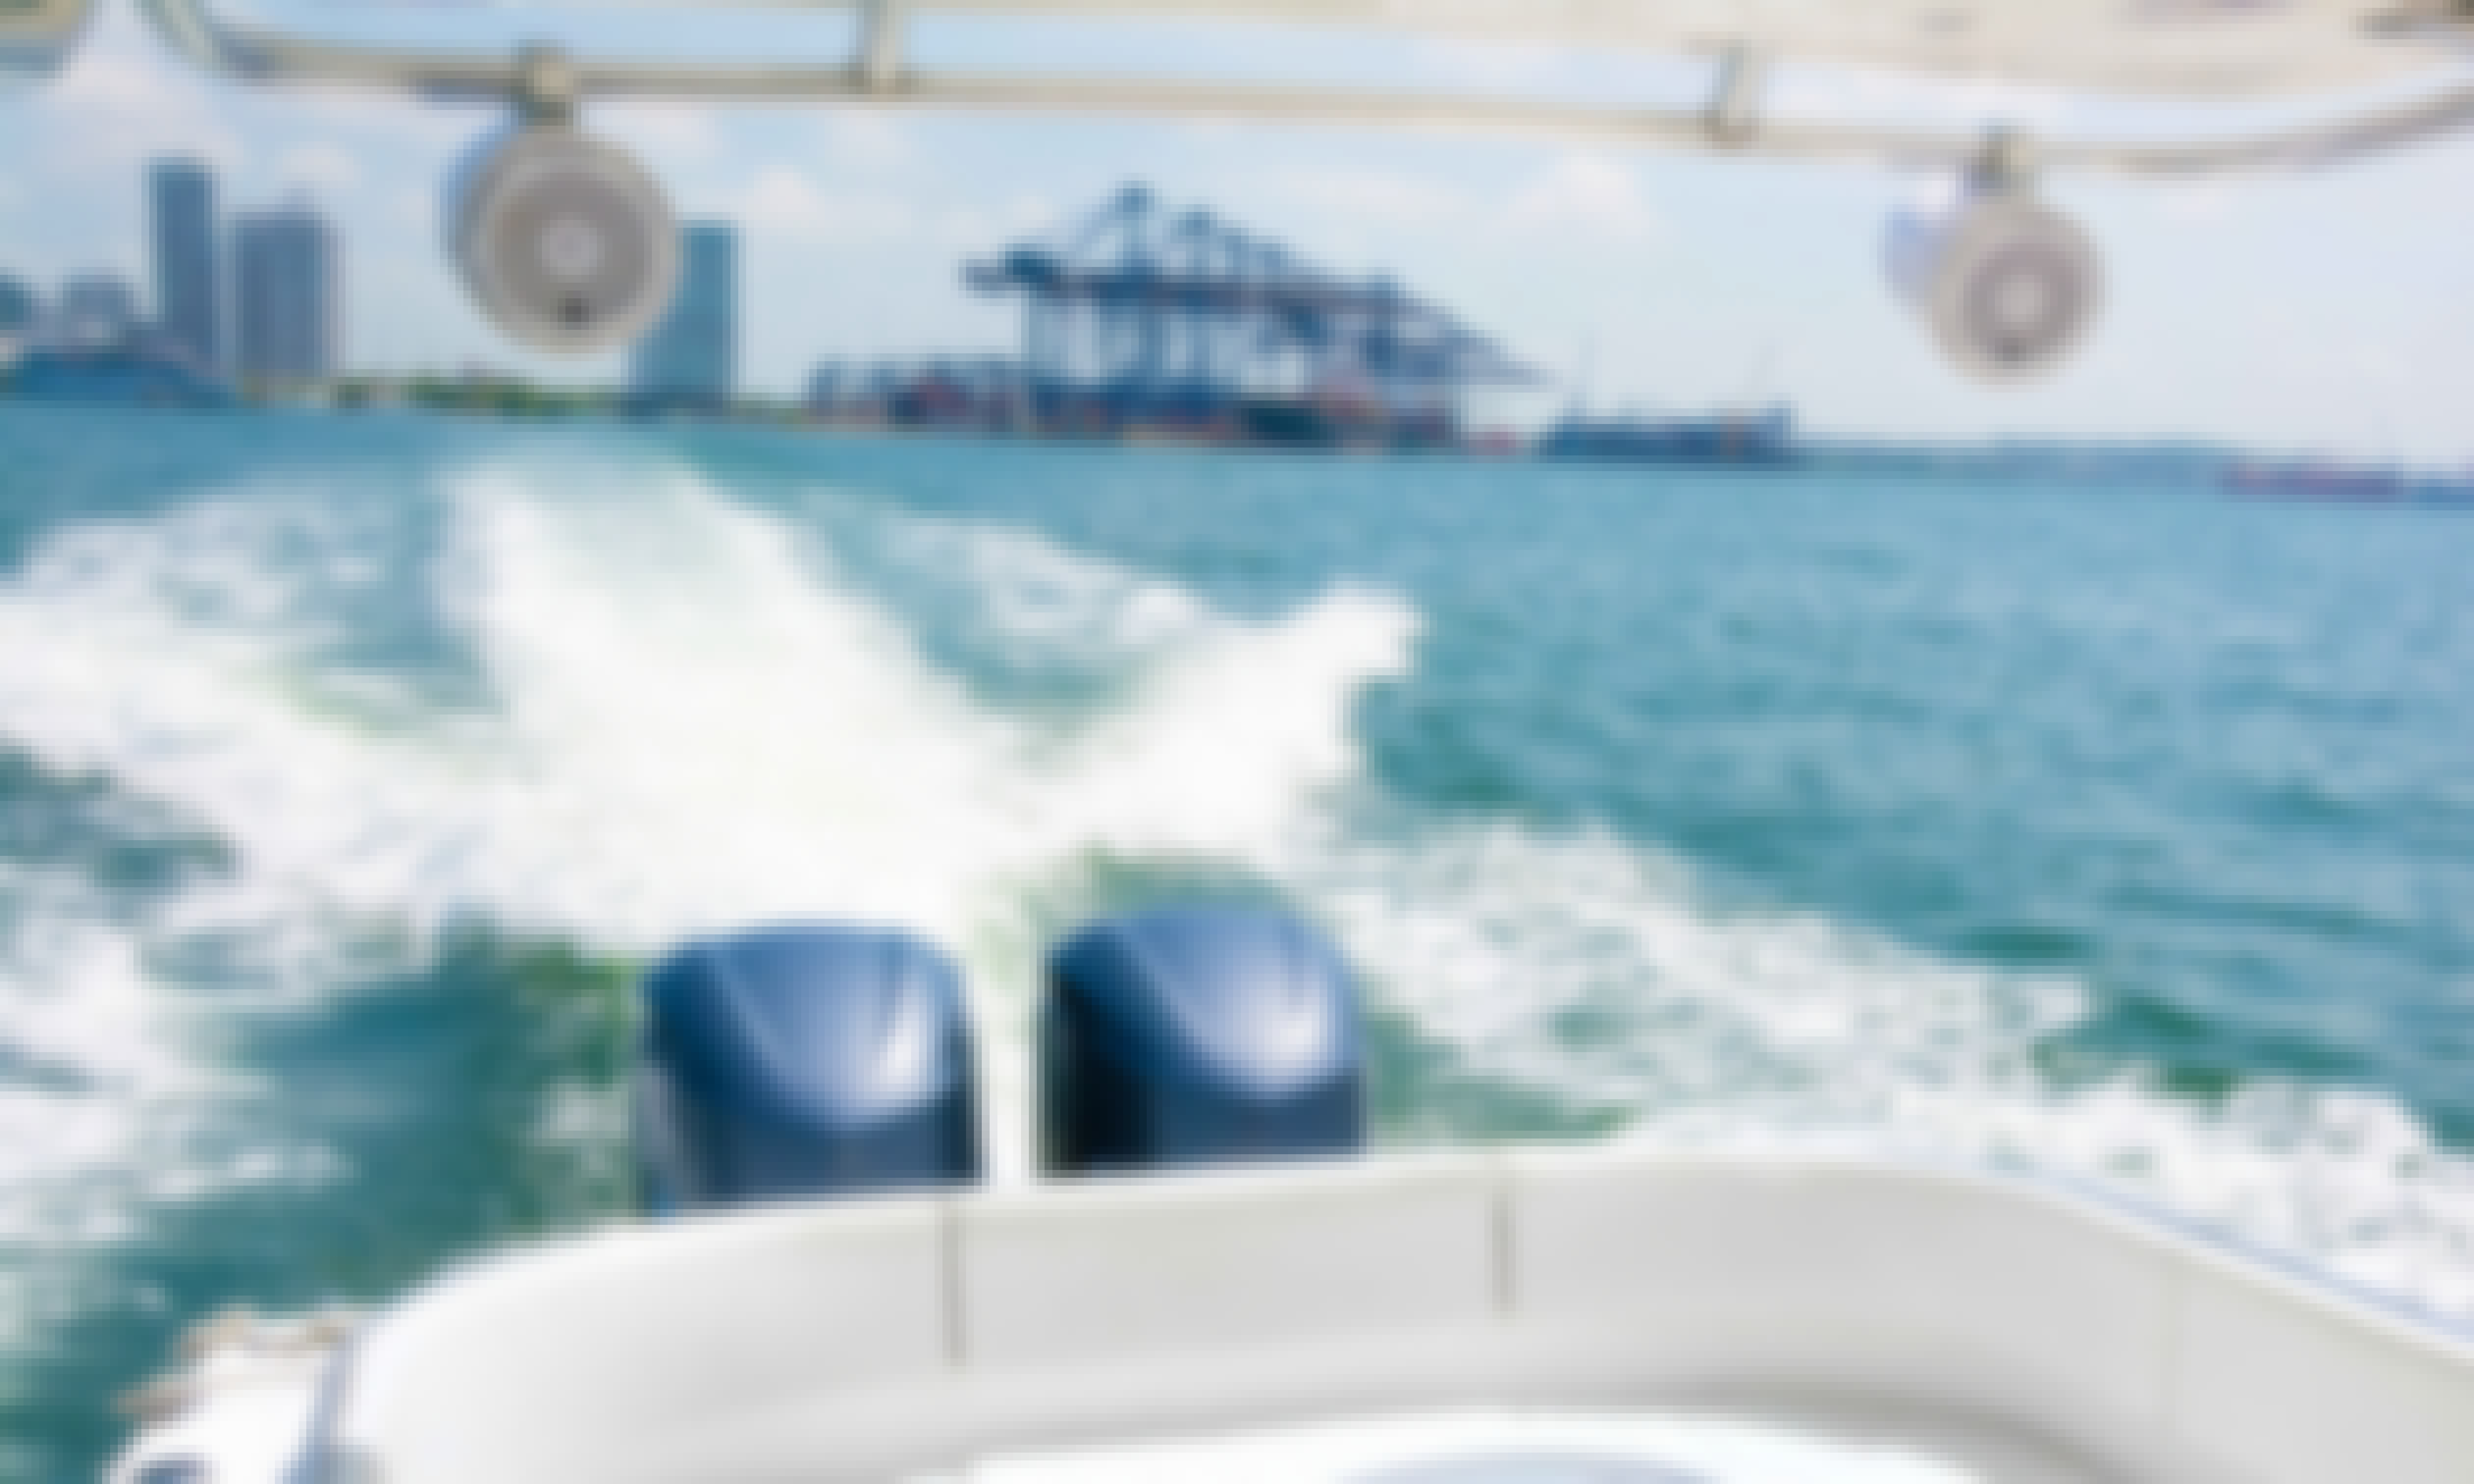 Rent this 41' Center Console in Cartagena, Colombia with Great Seating and Booming Sound System